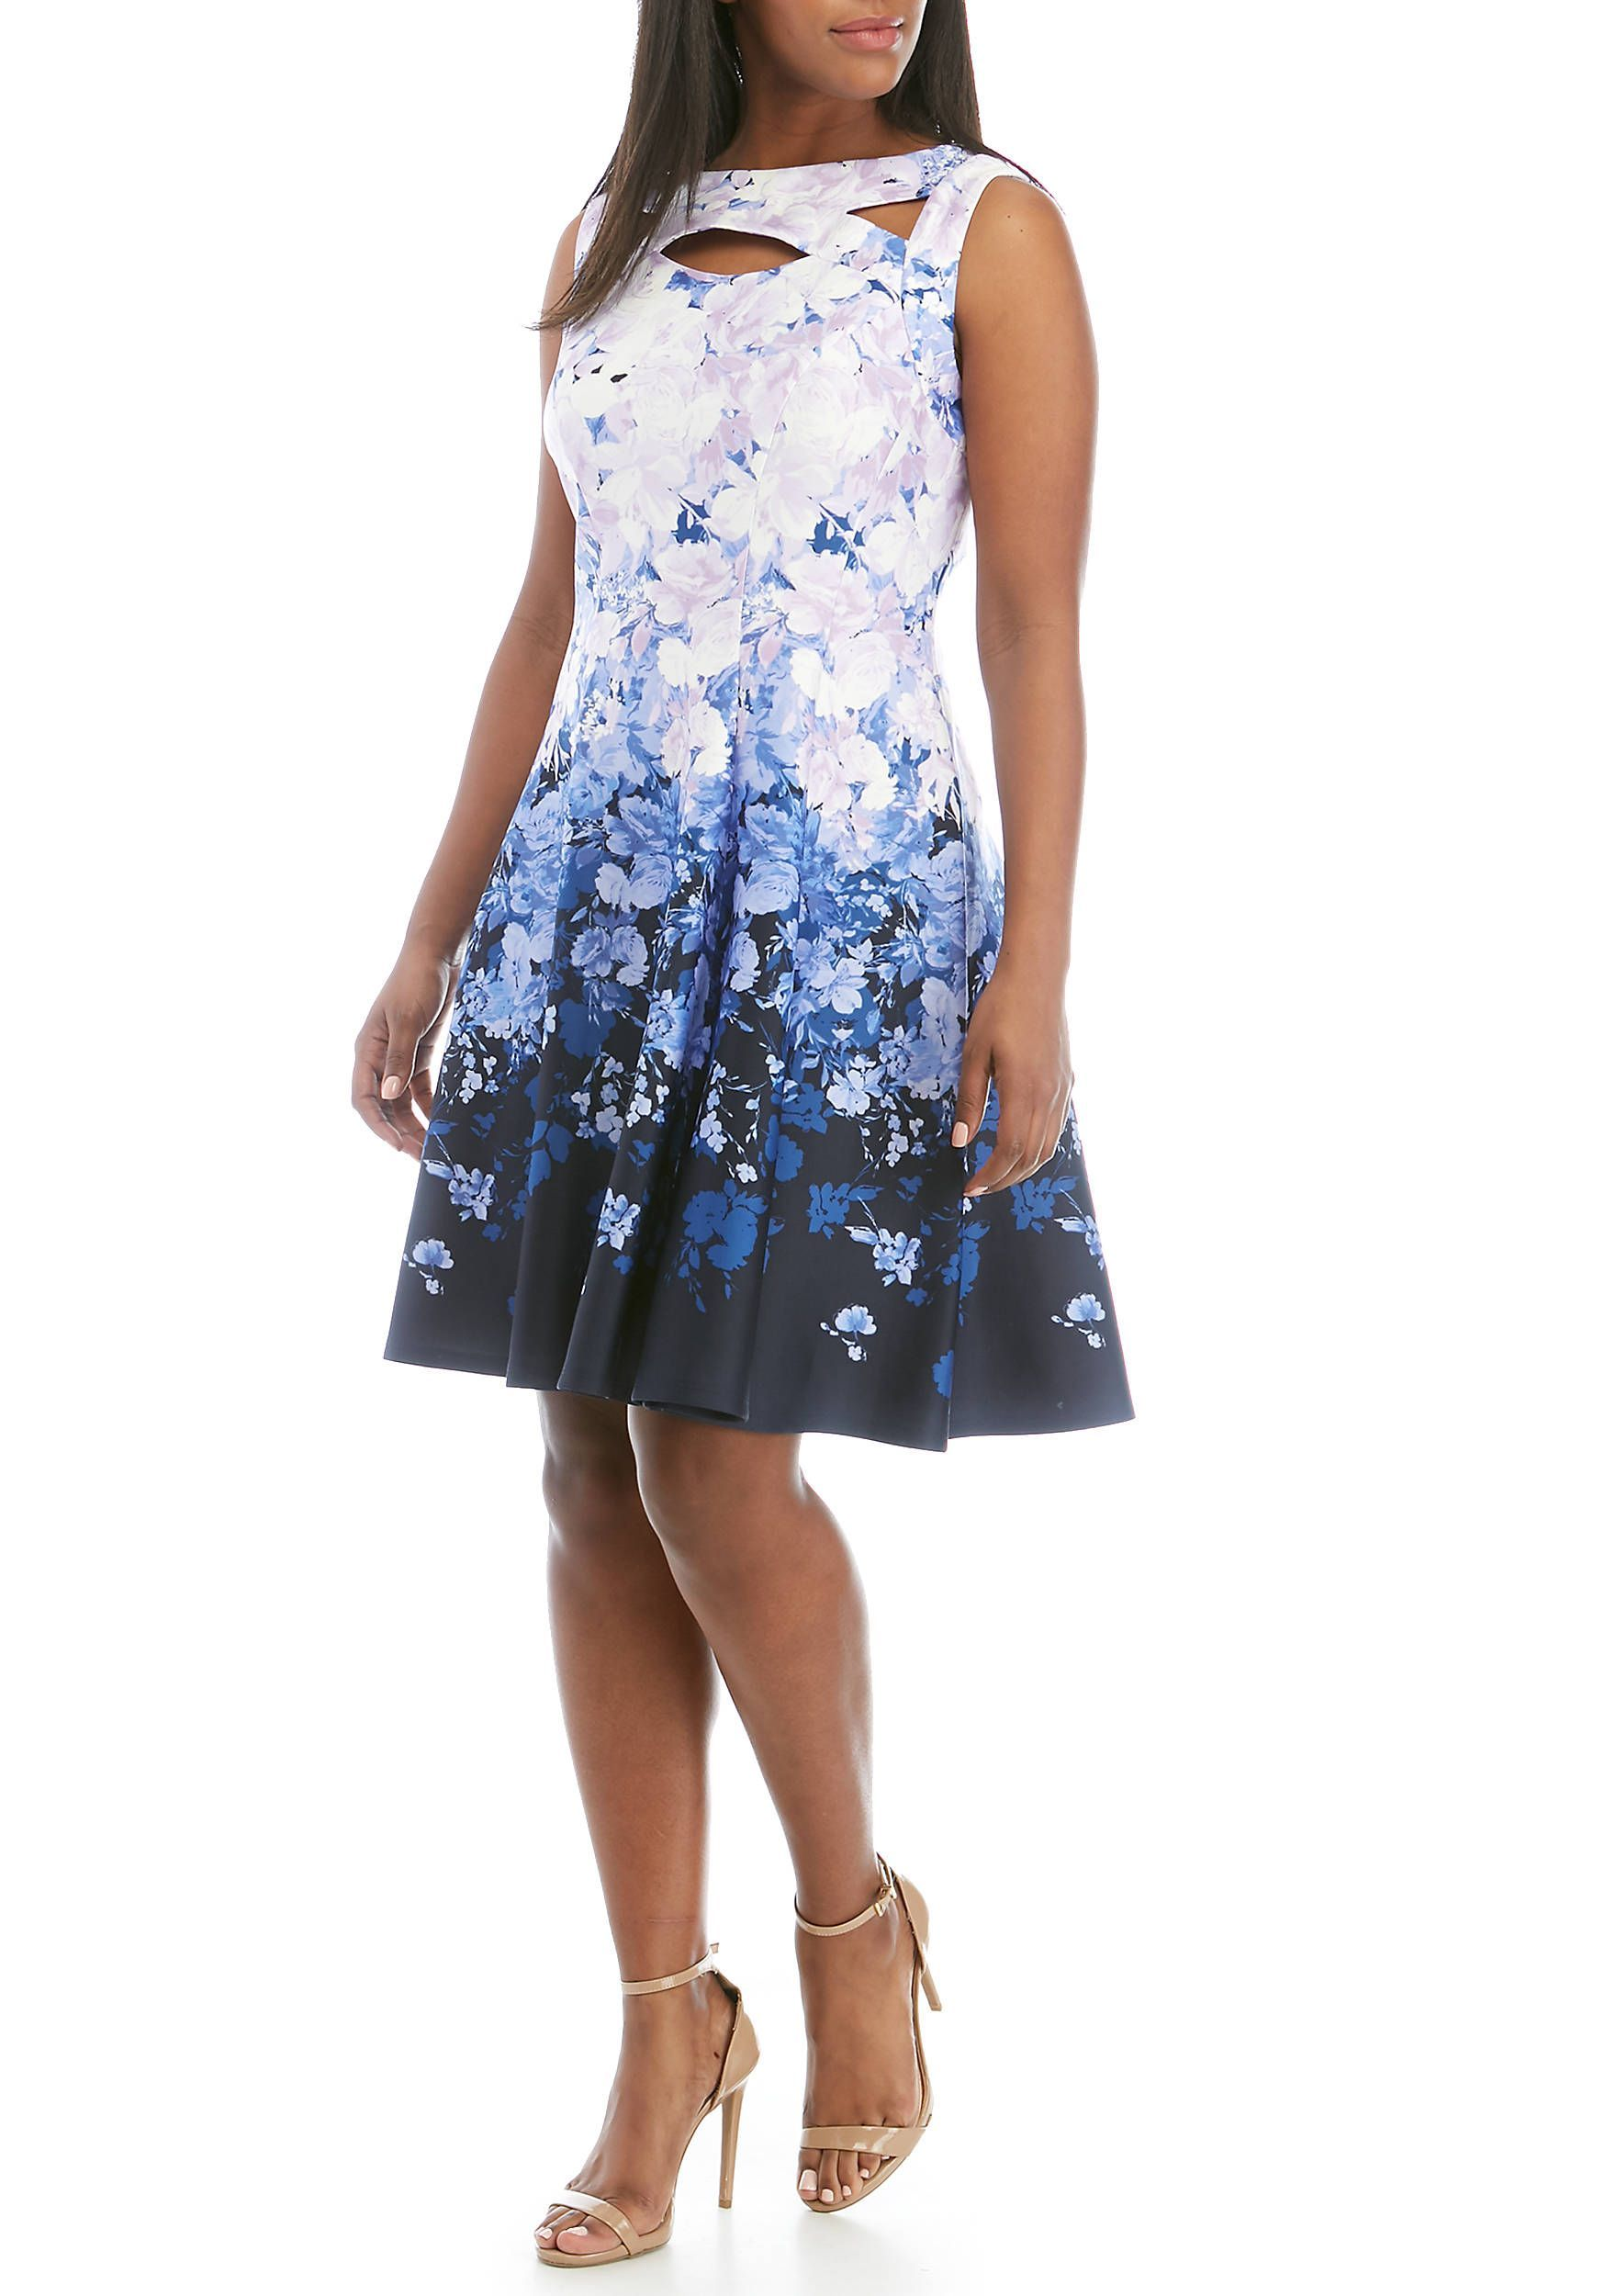 Gabby Skye Plus Size Cutout Floral Fit and Flare Dress | belk ...